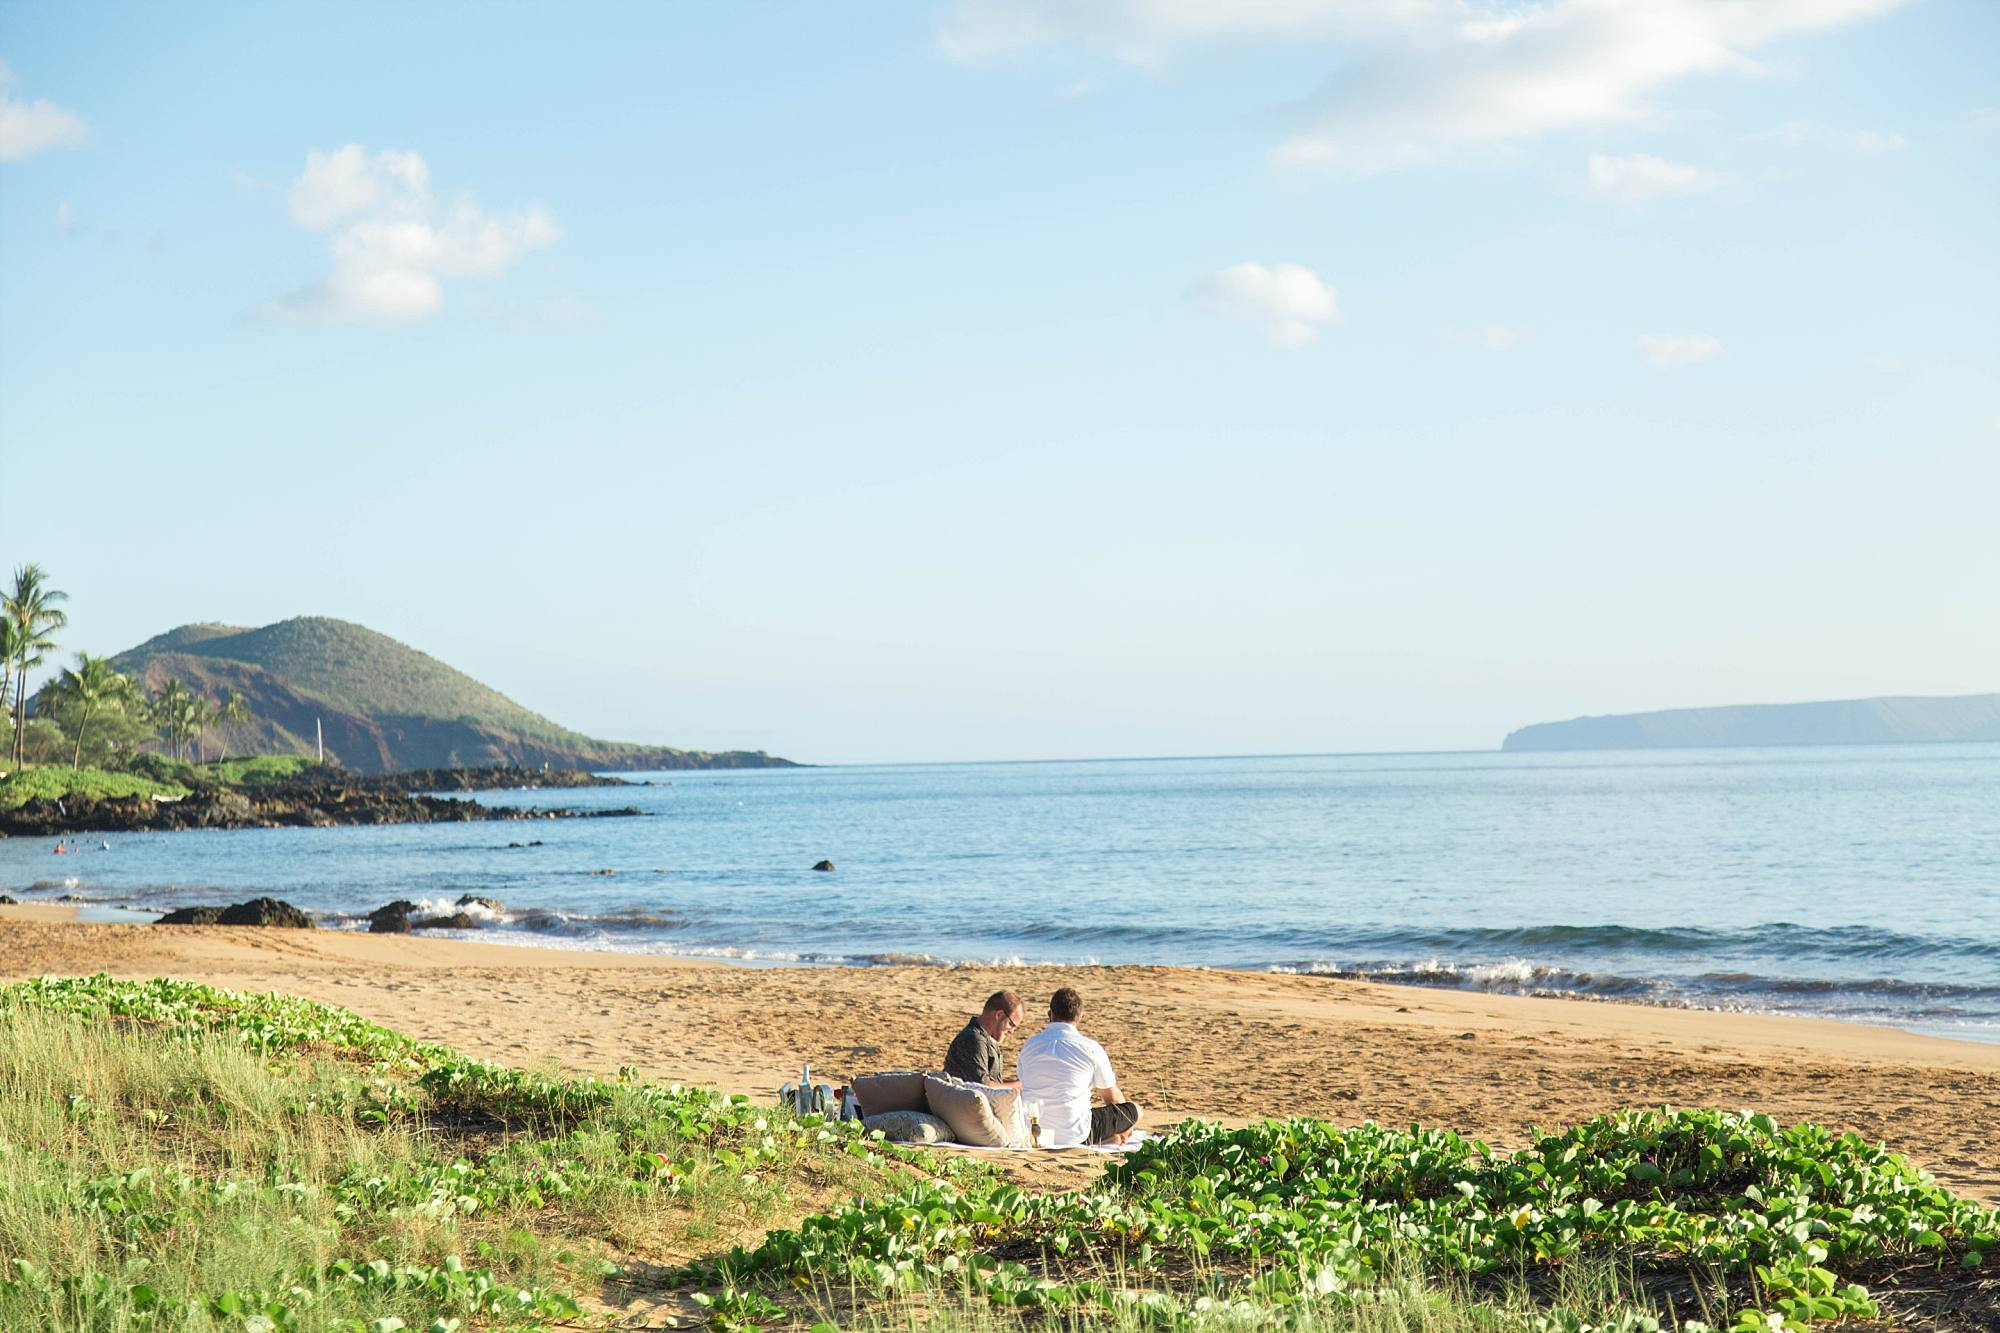 The men sitting down on their picnic blanket on the Maui beach, moments before a proposal!